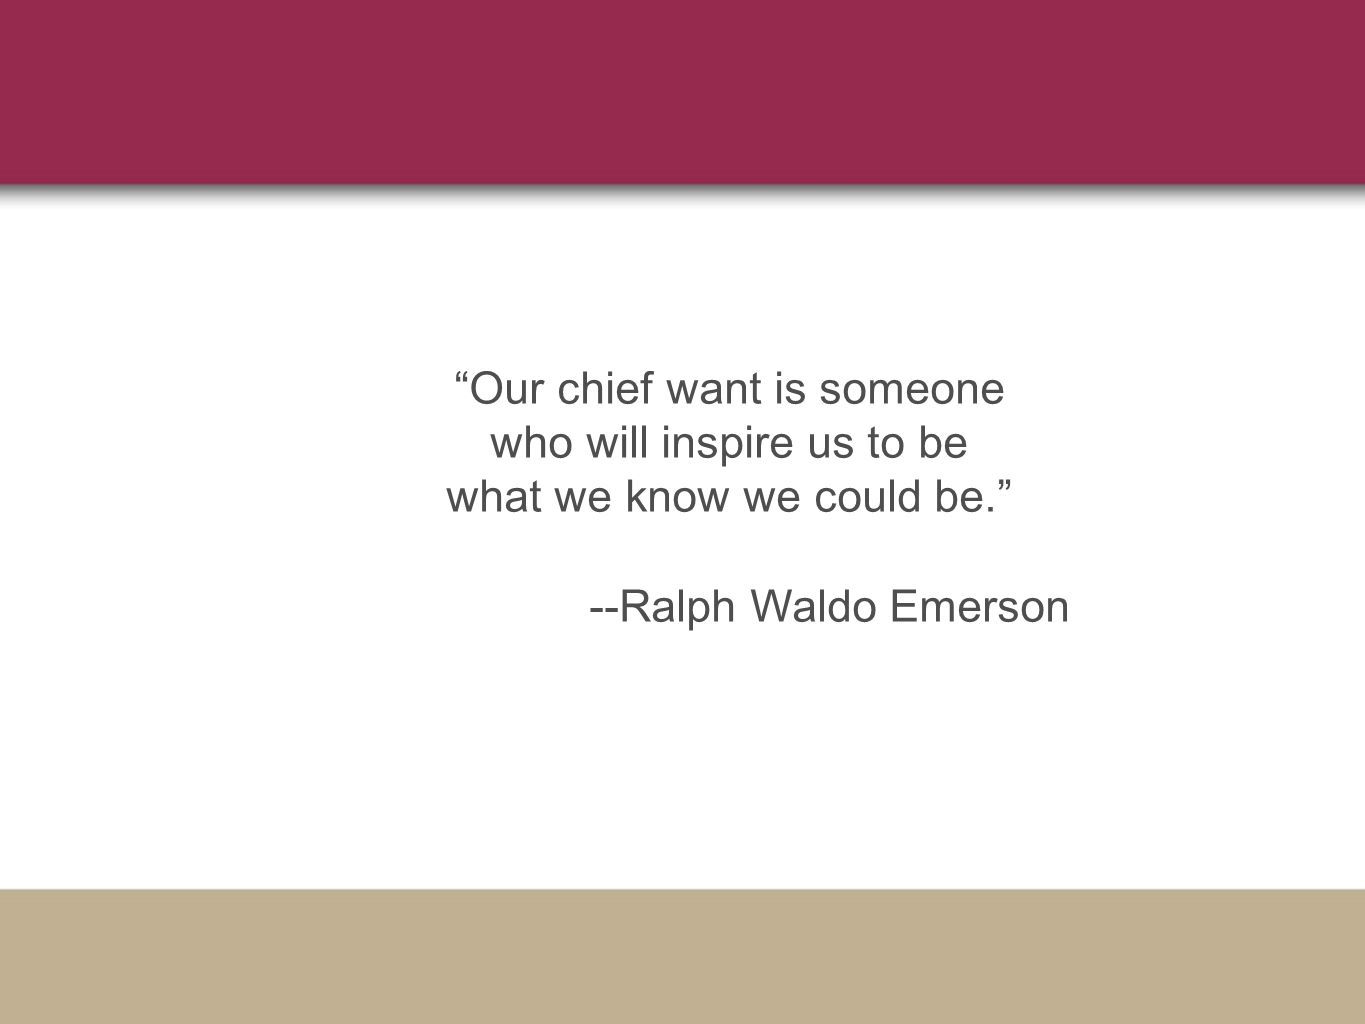 Our chief want is someone who will inspire us to be what we know we could be. --Ralph Waldo Emerson